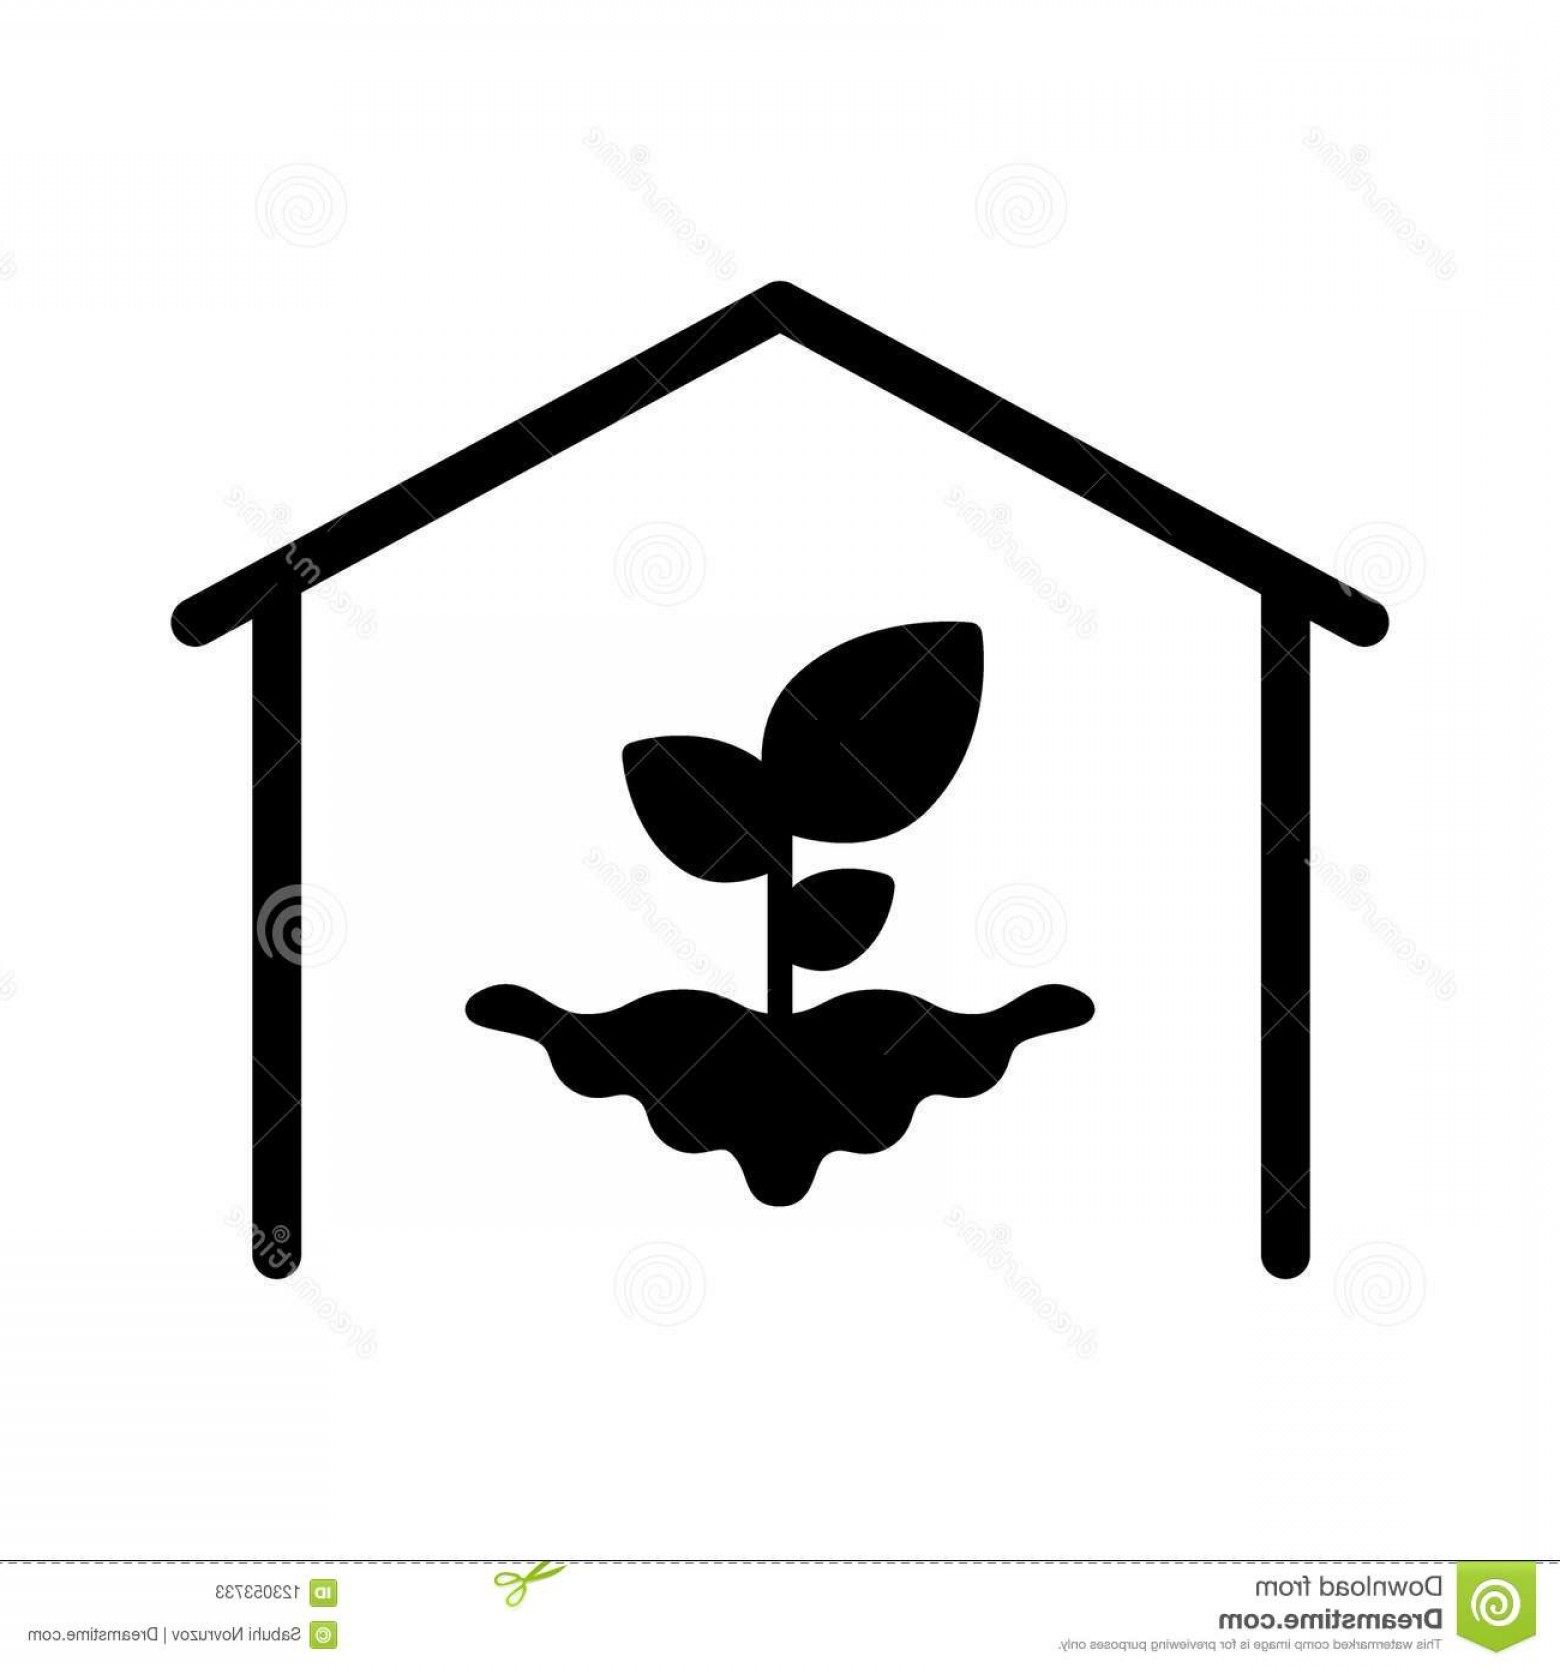 Black And White Vector Greenhouse: Hothouse Plant Solid Icon Vector Illustration Isolated White Glyph Style Design Designed Web App Eps Greenhouse Plant Image